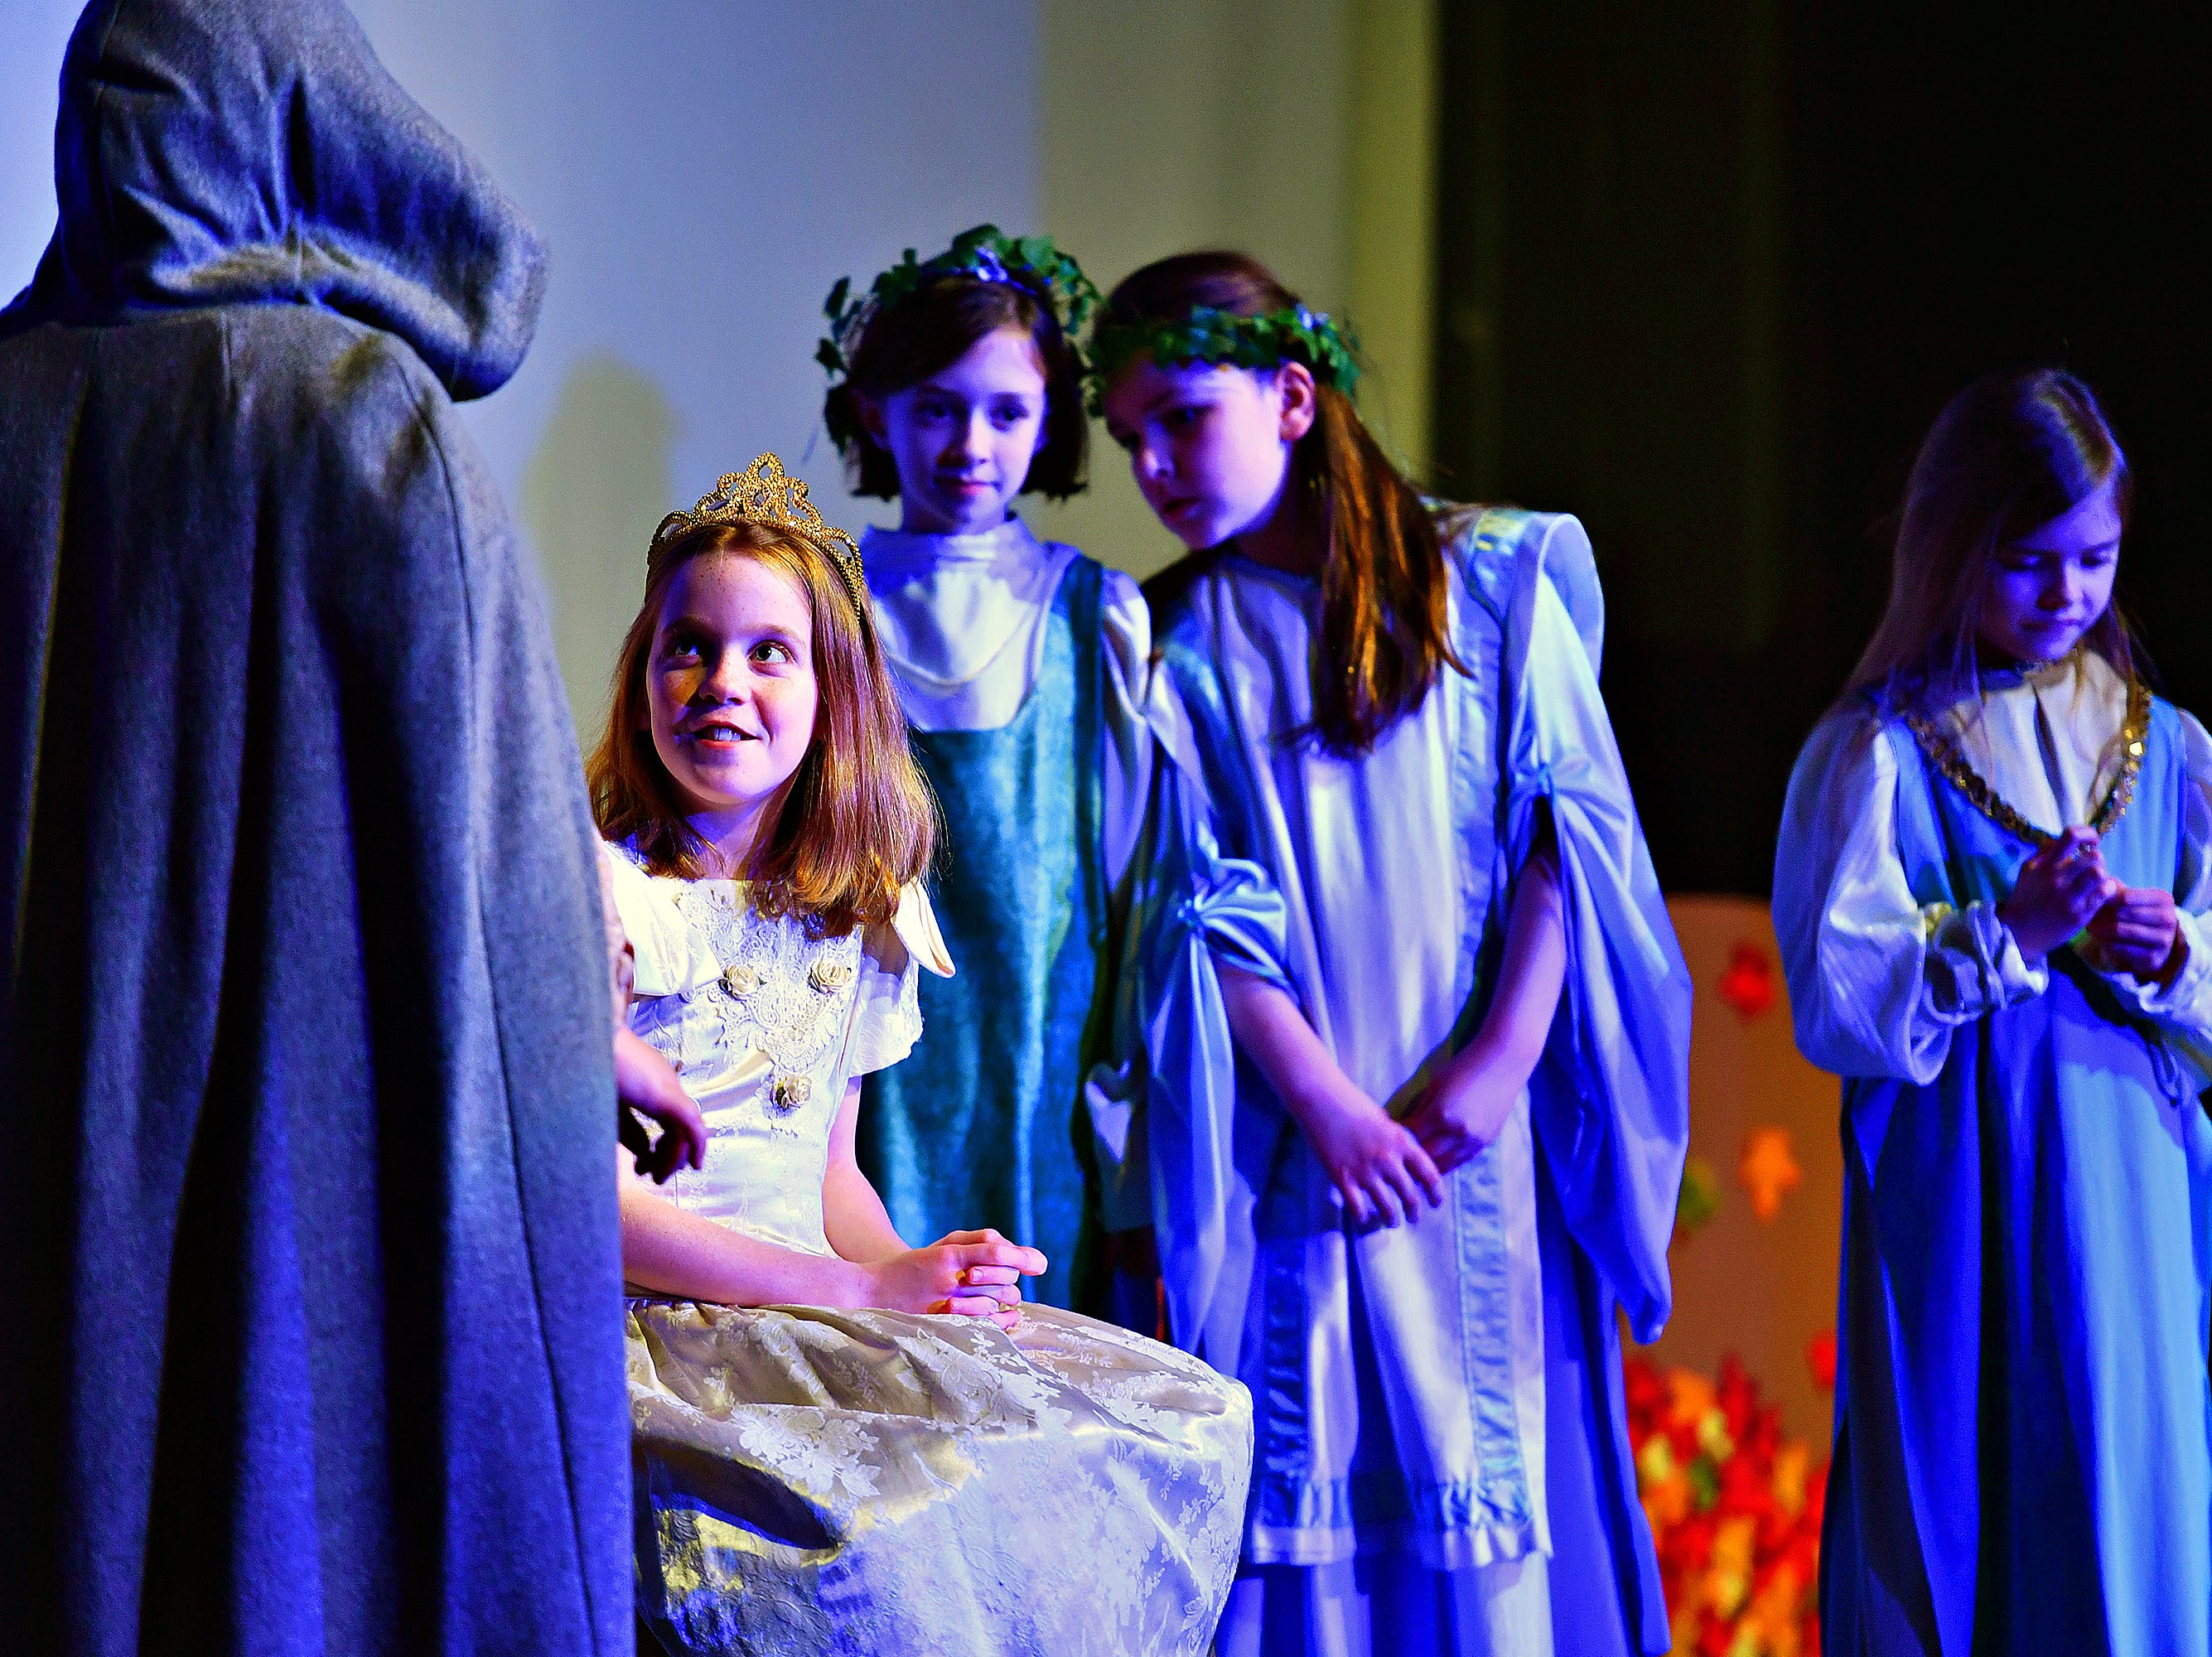 Princess (Kaitlin Damon, 11), second from left, during dress rehearsal for The Snow Queen, performed by Theatre Arts for Everyone, at Logos Academy in York City, Wednesday, March 6, 2019. Performances will be March 8-9 at 7 p.m. with 3 p.m. matinees March 9-10. Dawn J. Sagert photo